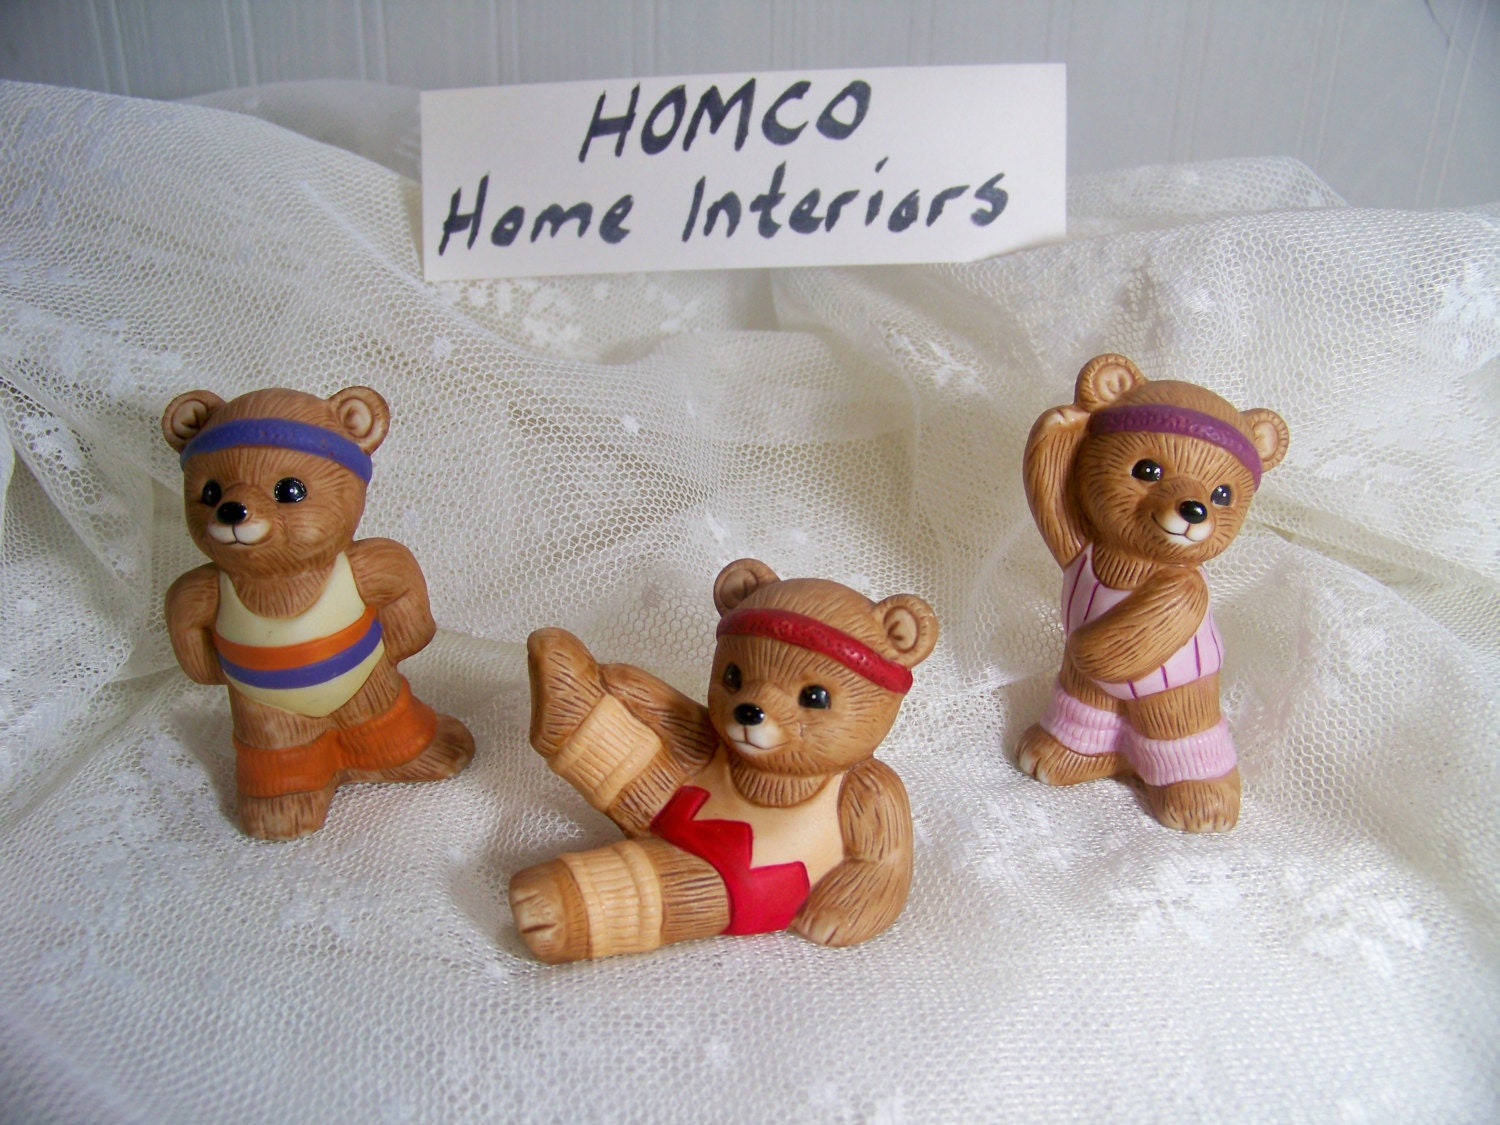 home interior bears home interiors bears aerobic bears homco 12179